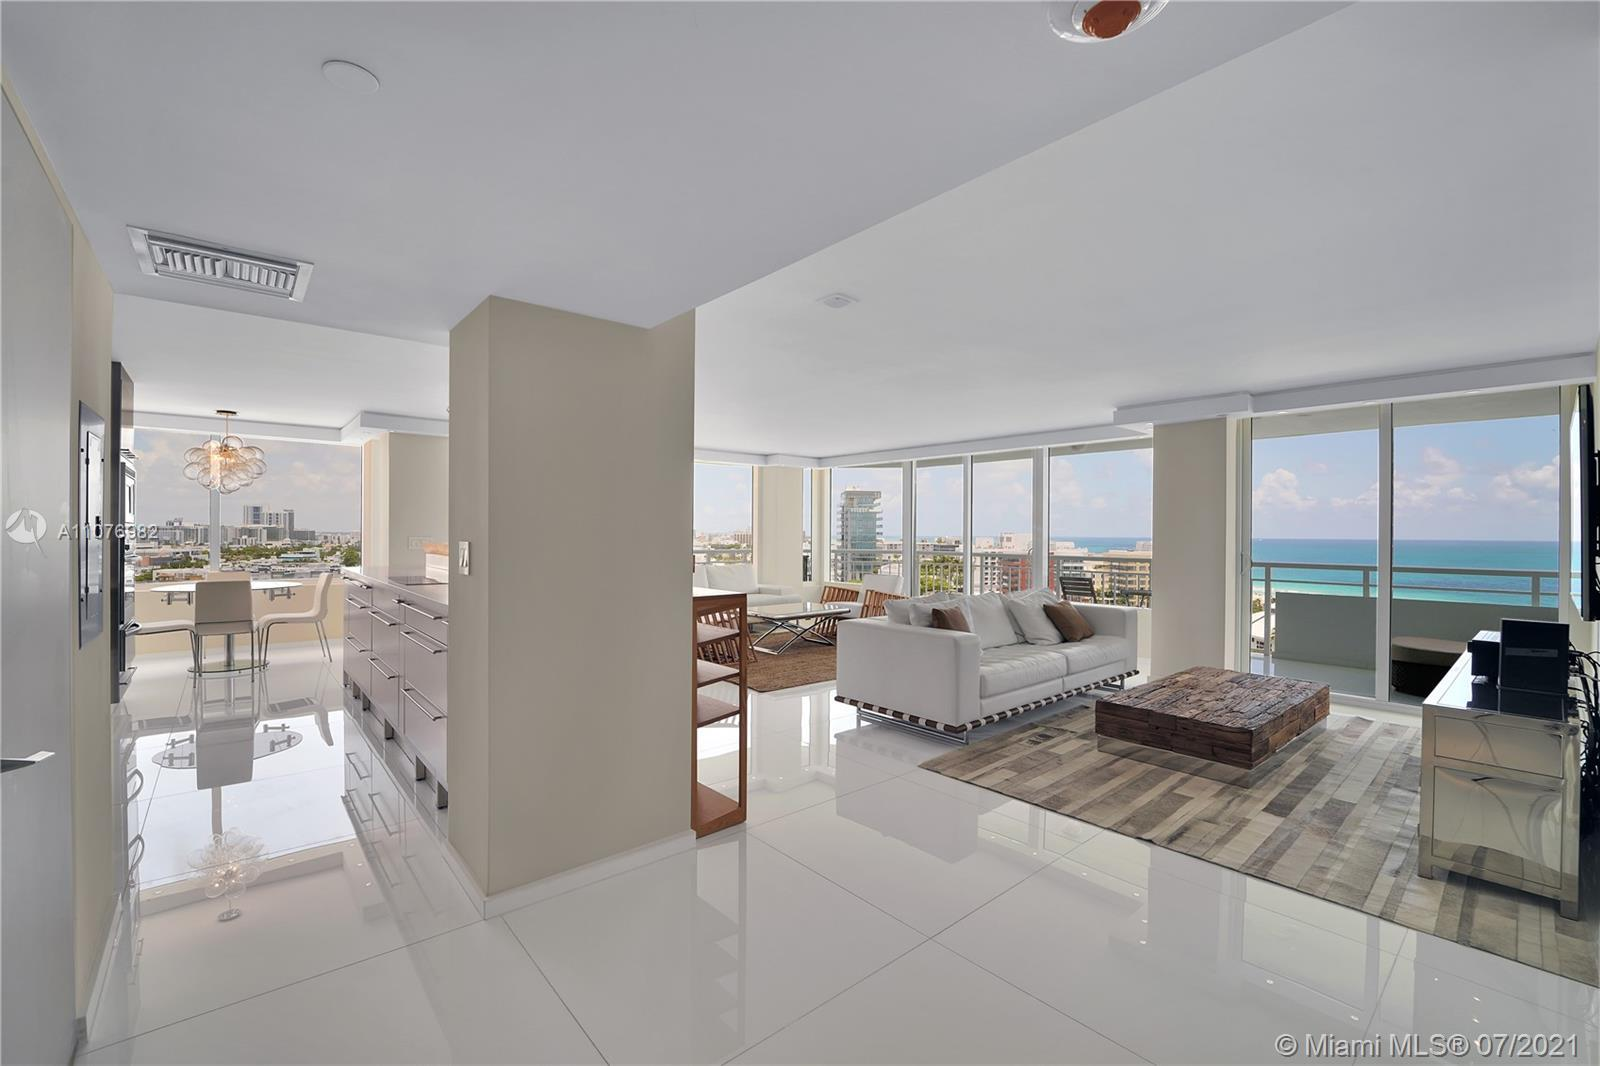 Renovated corner unit with wrap around balcony with views of ocean, Govt Cut and South Beach. New im